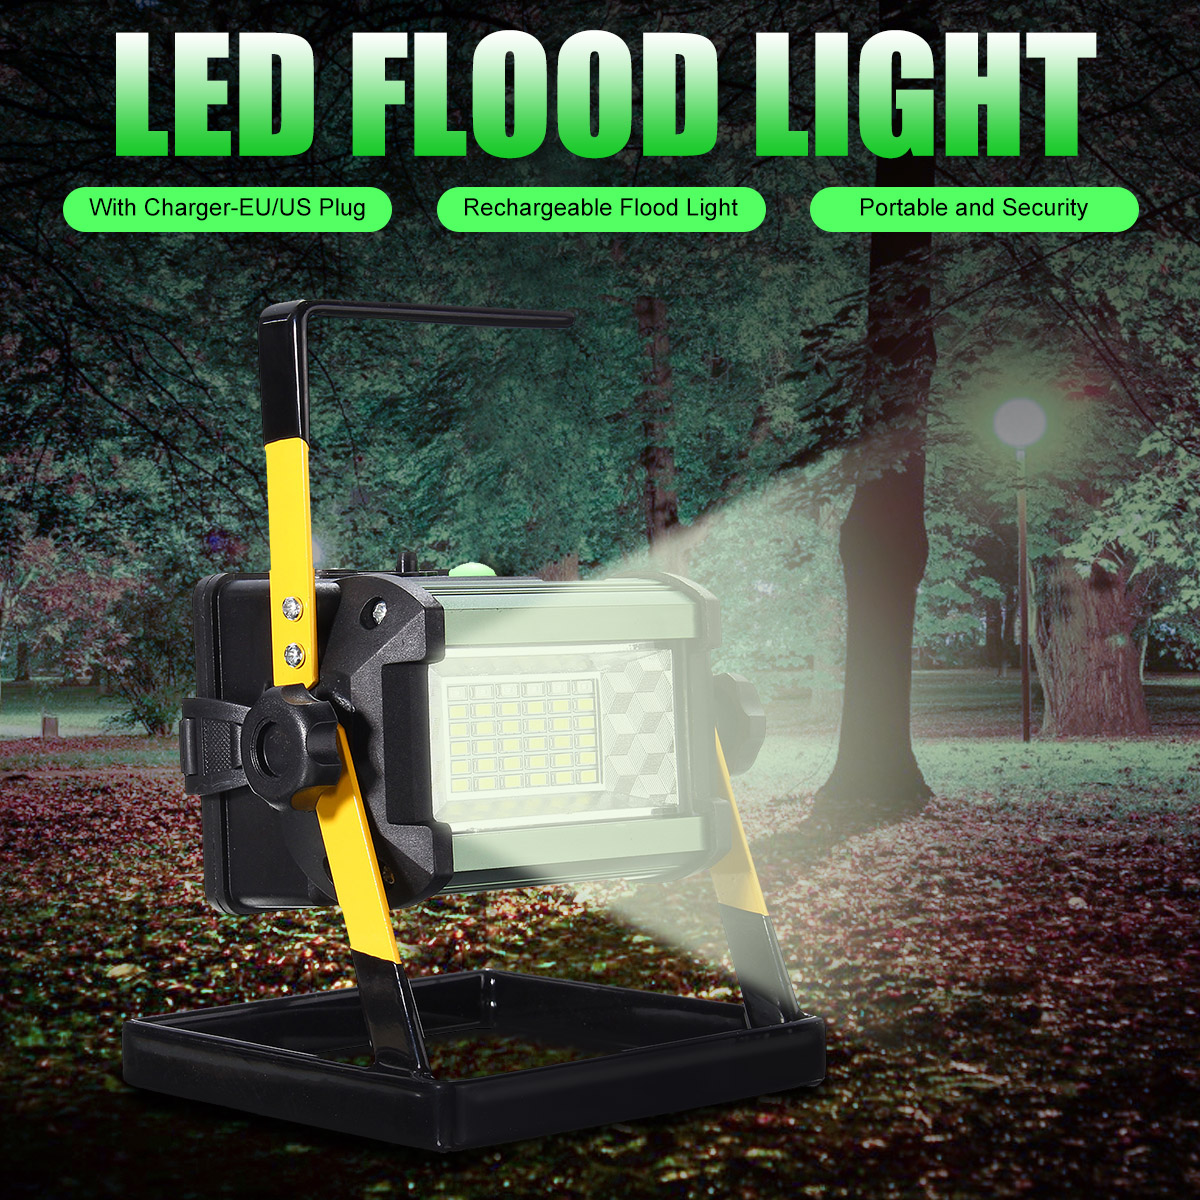 2400LM Rechargeable LED Flood Light 4 Modes 50W 36 LED Floodlights Spot Camping Portable Outdoor Flashing Lamp EU/US plug2400LM Rechargeable LED Flood Light 4 Modes 50W 36 LED Floodlights Spot Camping Portable Outdoor Flashing Lamp EU/US plug